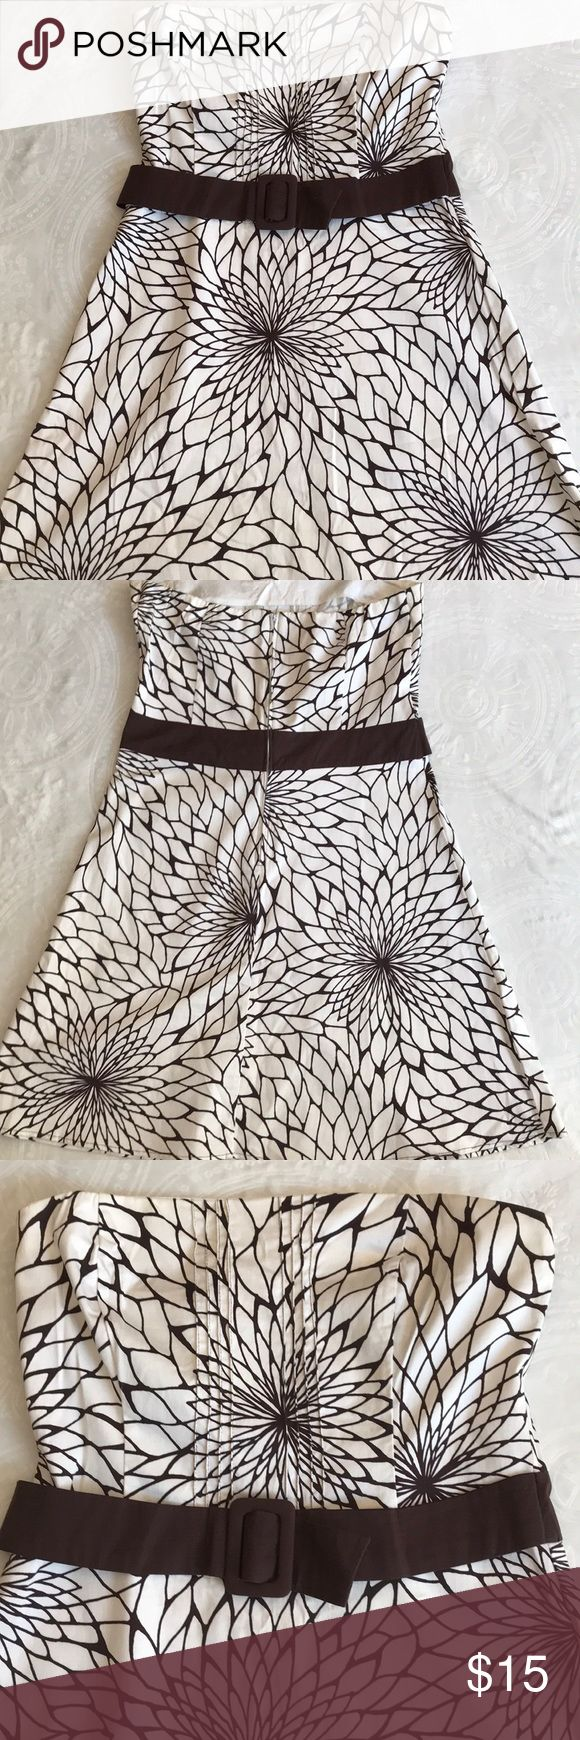 Cute and fun strapless Brown / white size 14 dress Love the print and the style of this dress! Perfect for the warmer days to come! Made of 97% cotton and 3% spandex giving it a lil stretch! The yellowish color in the pics is the lighting sorry B. Smart Dresses Midi